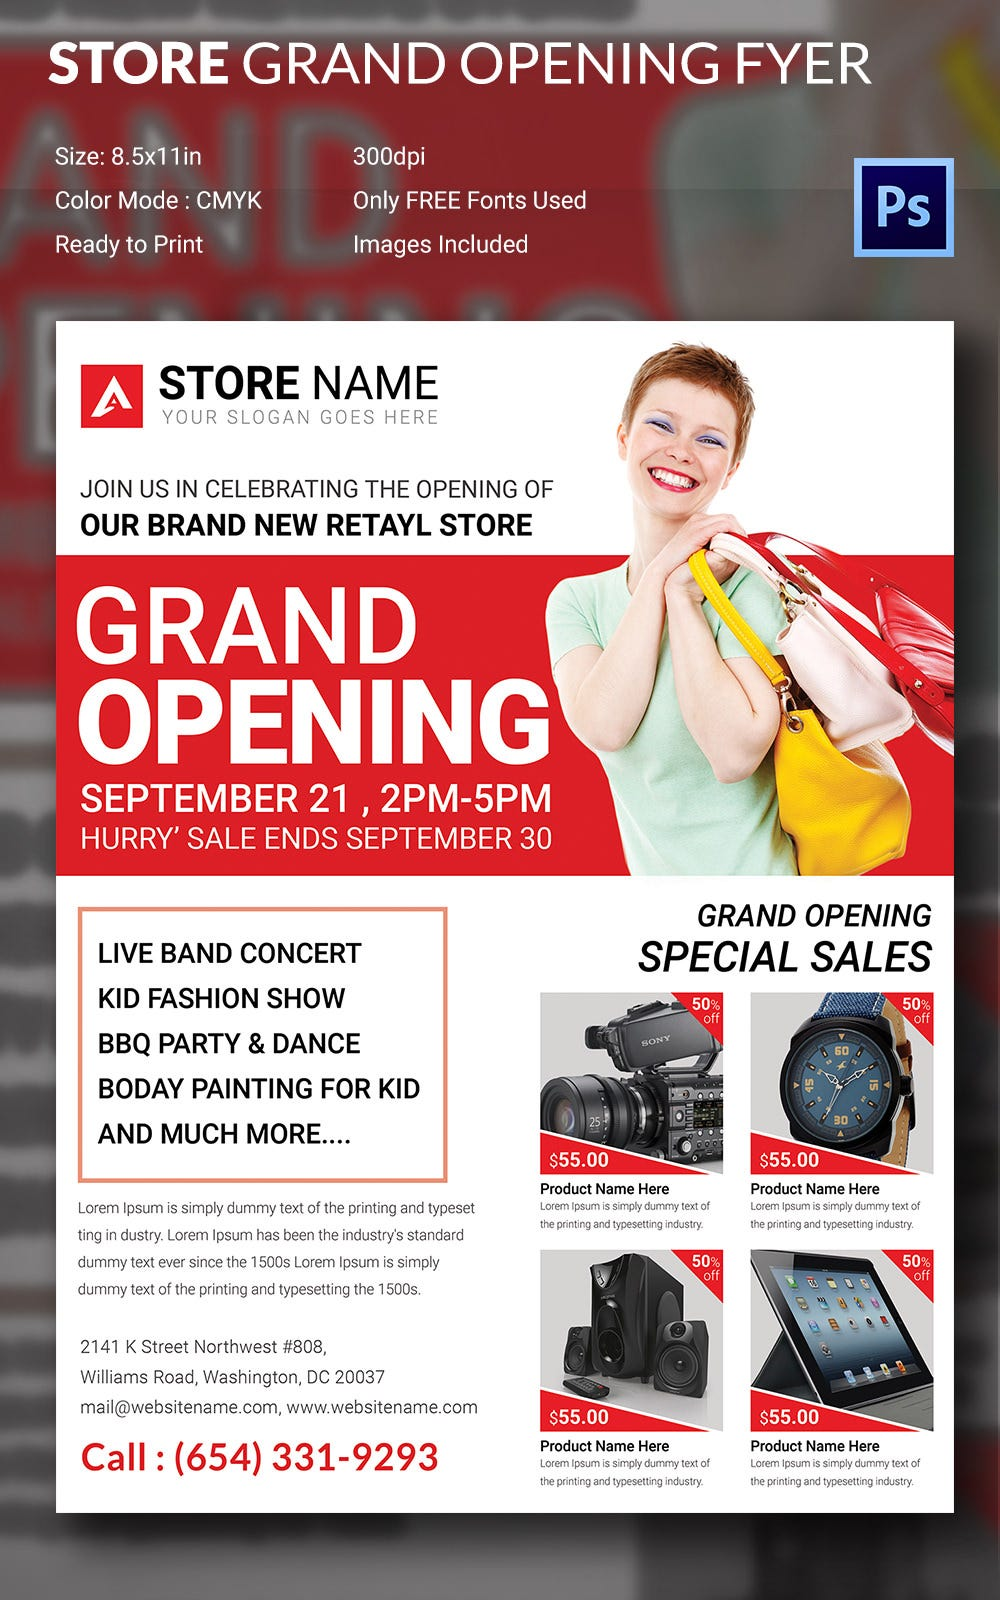 psd flyer templates psd eps ai indesign format store grand opening flyer template